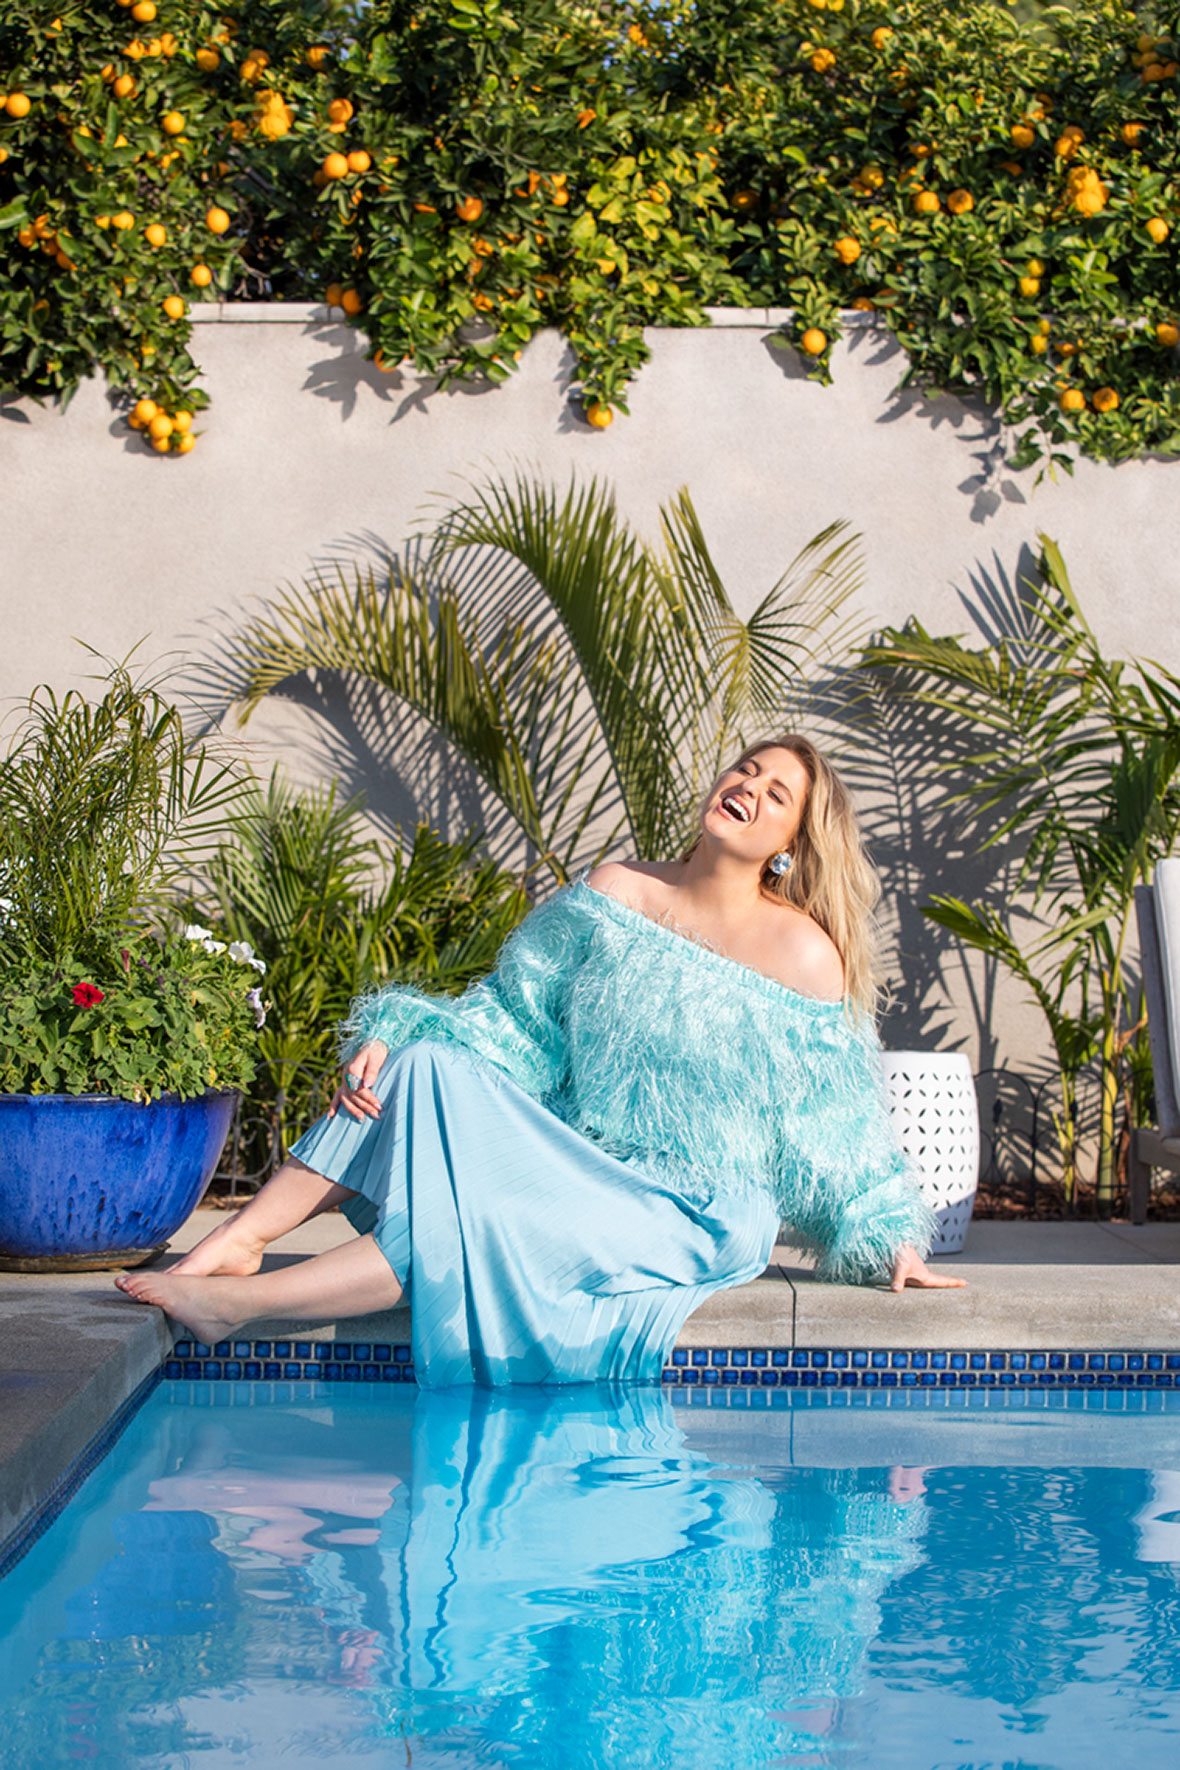 meghan-trainor_02-pool1_0687_rgb